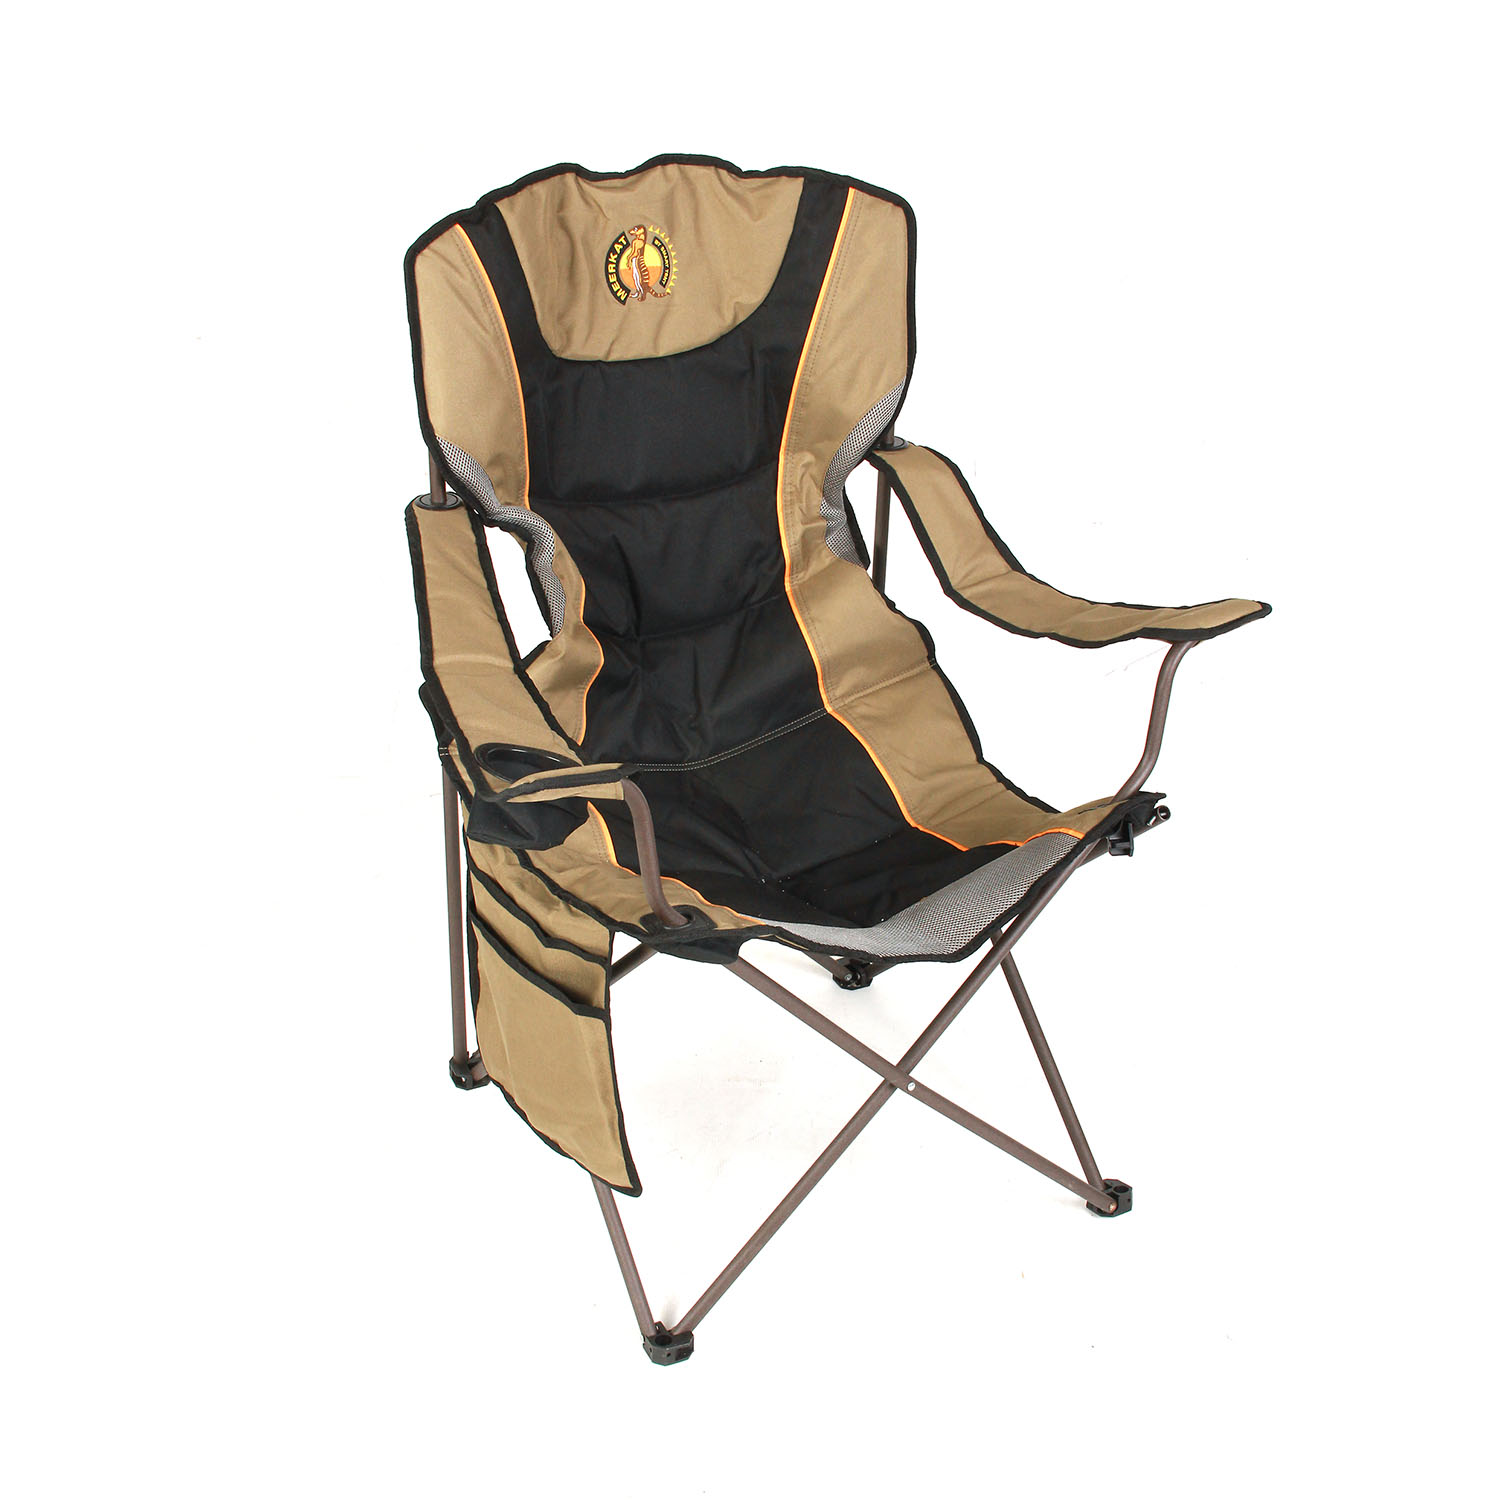 Charlie 440 Best Buy Chair Bushtec Adventure